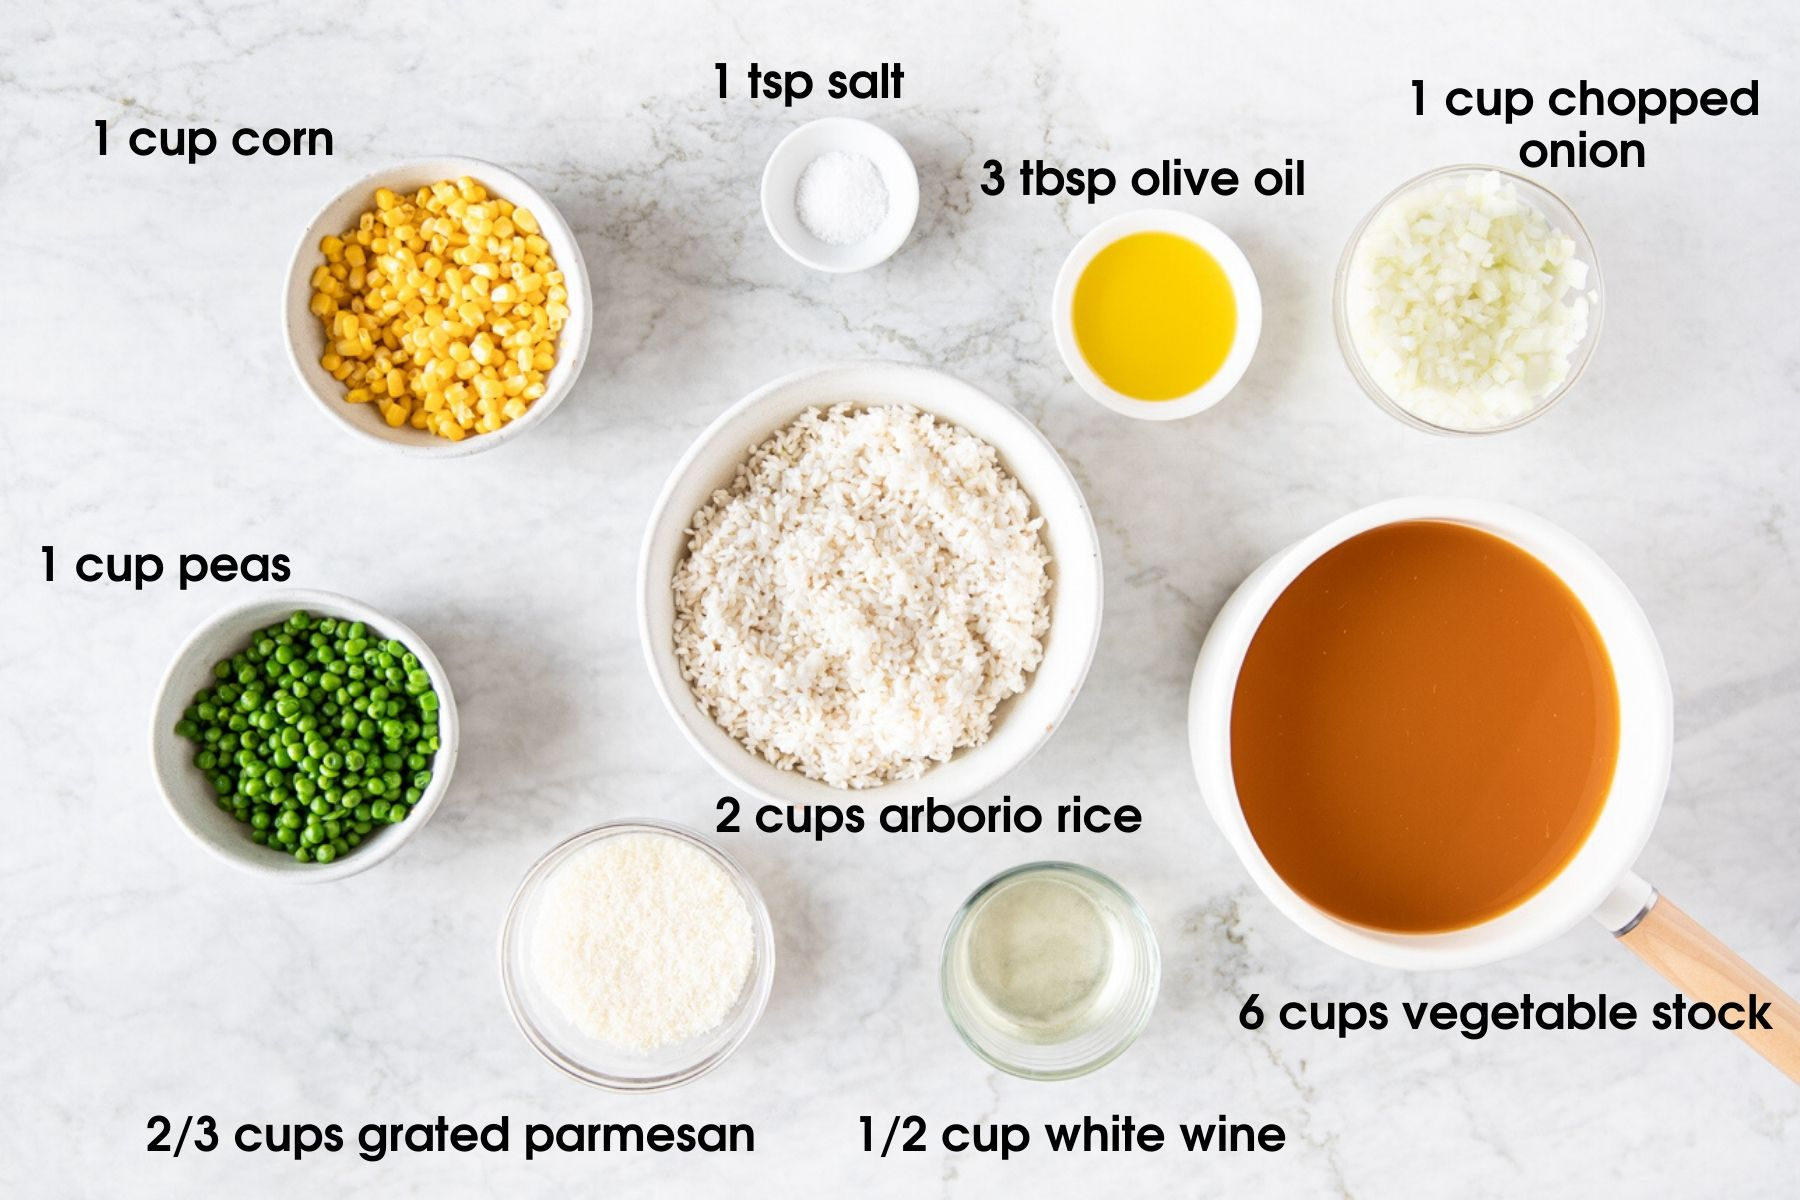 Ingredients for: Spring Risotto With Peas and Corn including corn, peas, salt, olive oil, onion, arborio rice, vegetable stock, white wine, grated parmesan.